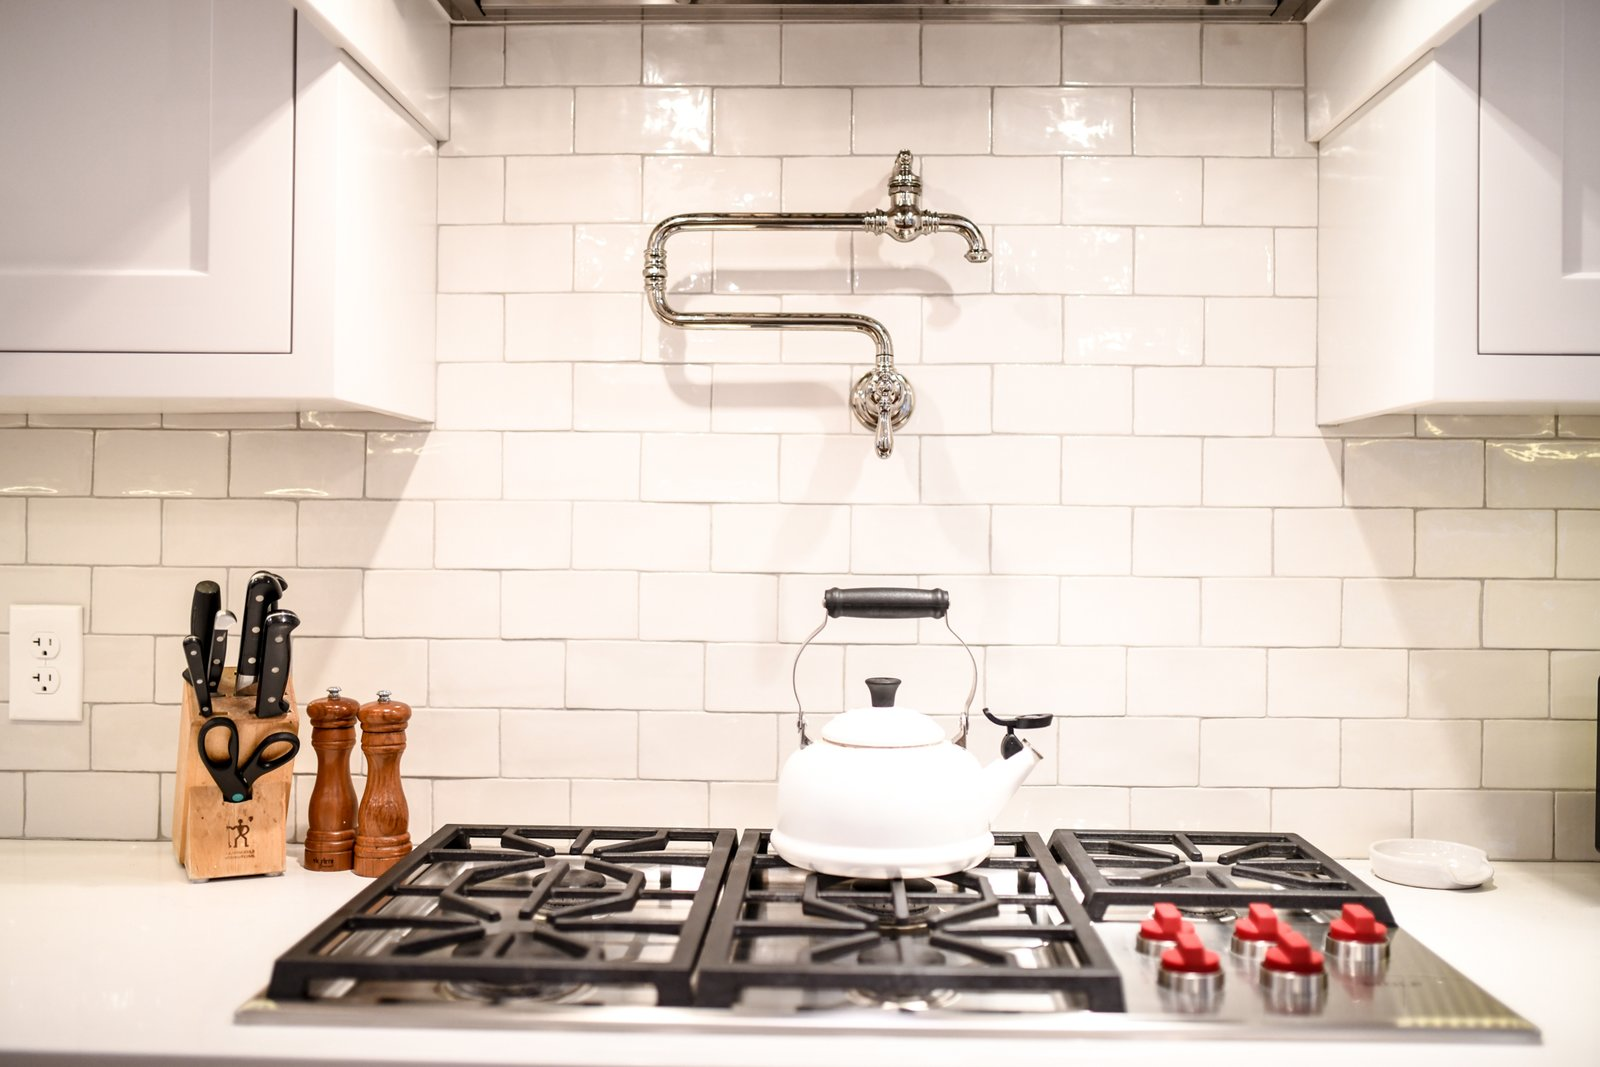 Backsplash from Porcelain and More